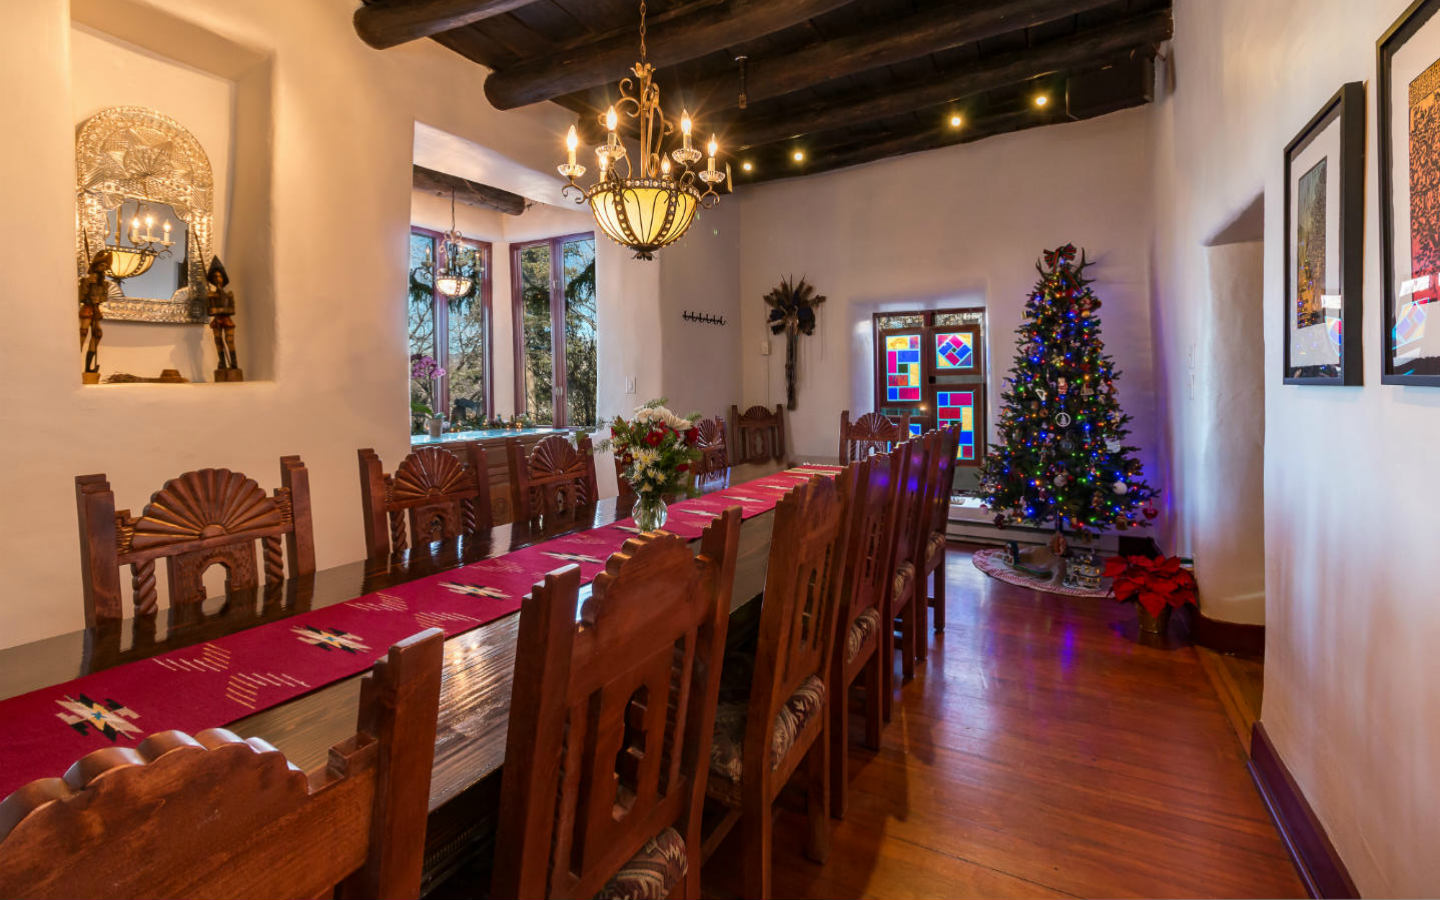 Inn's dining room with christmas decorations